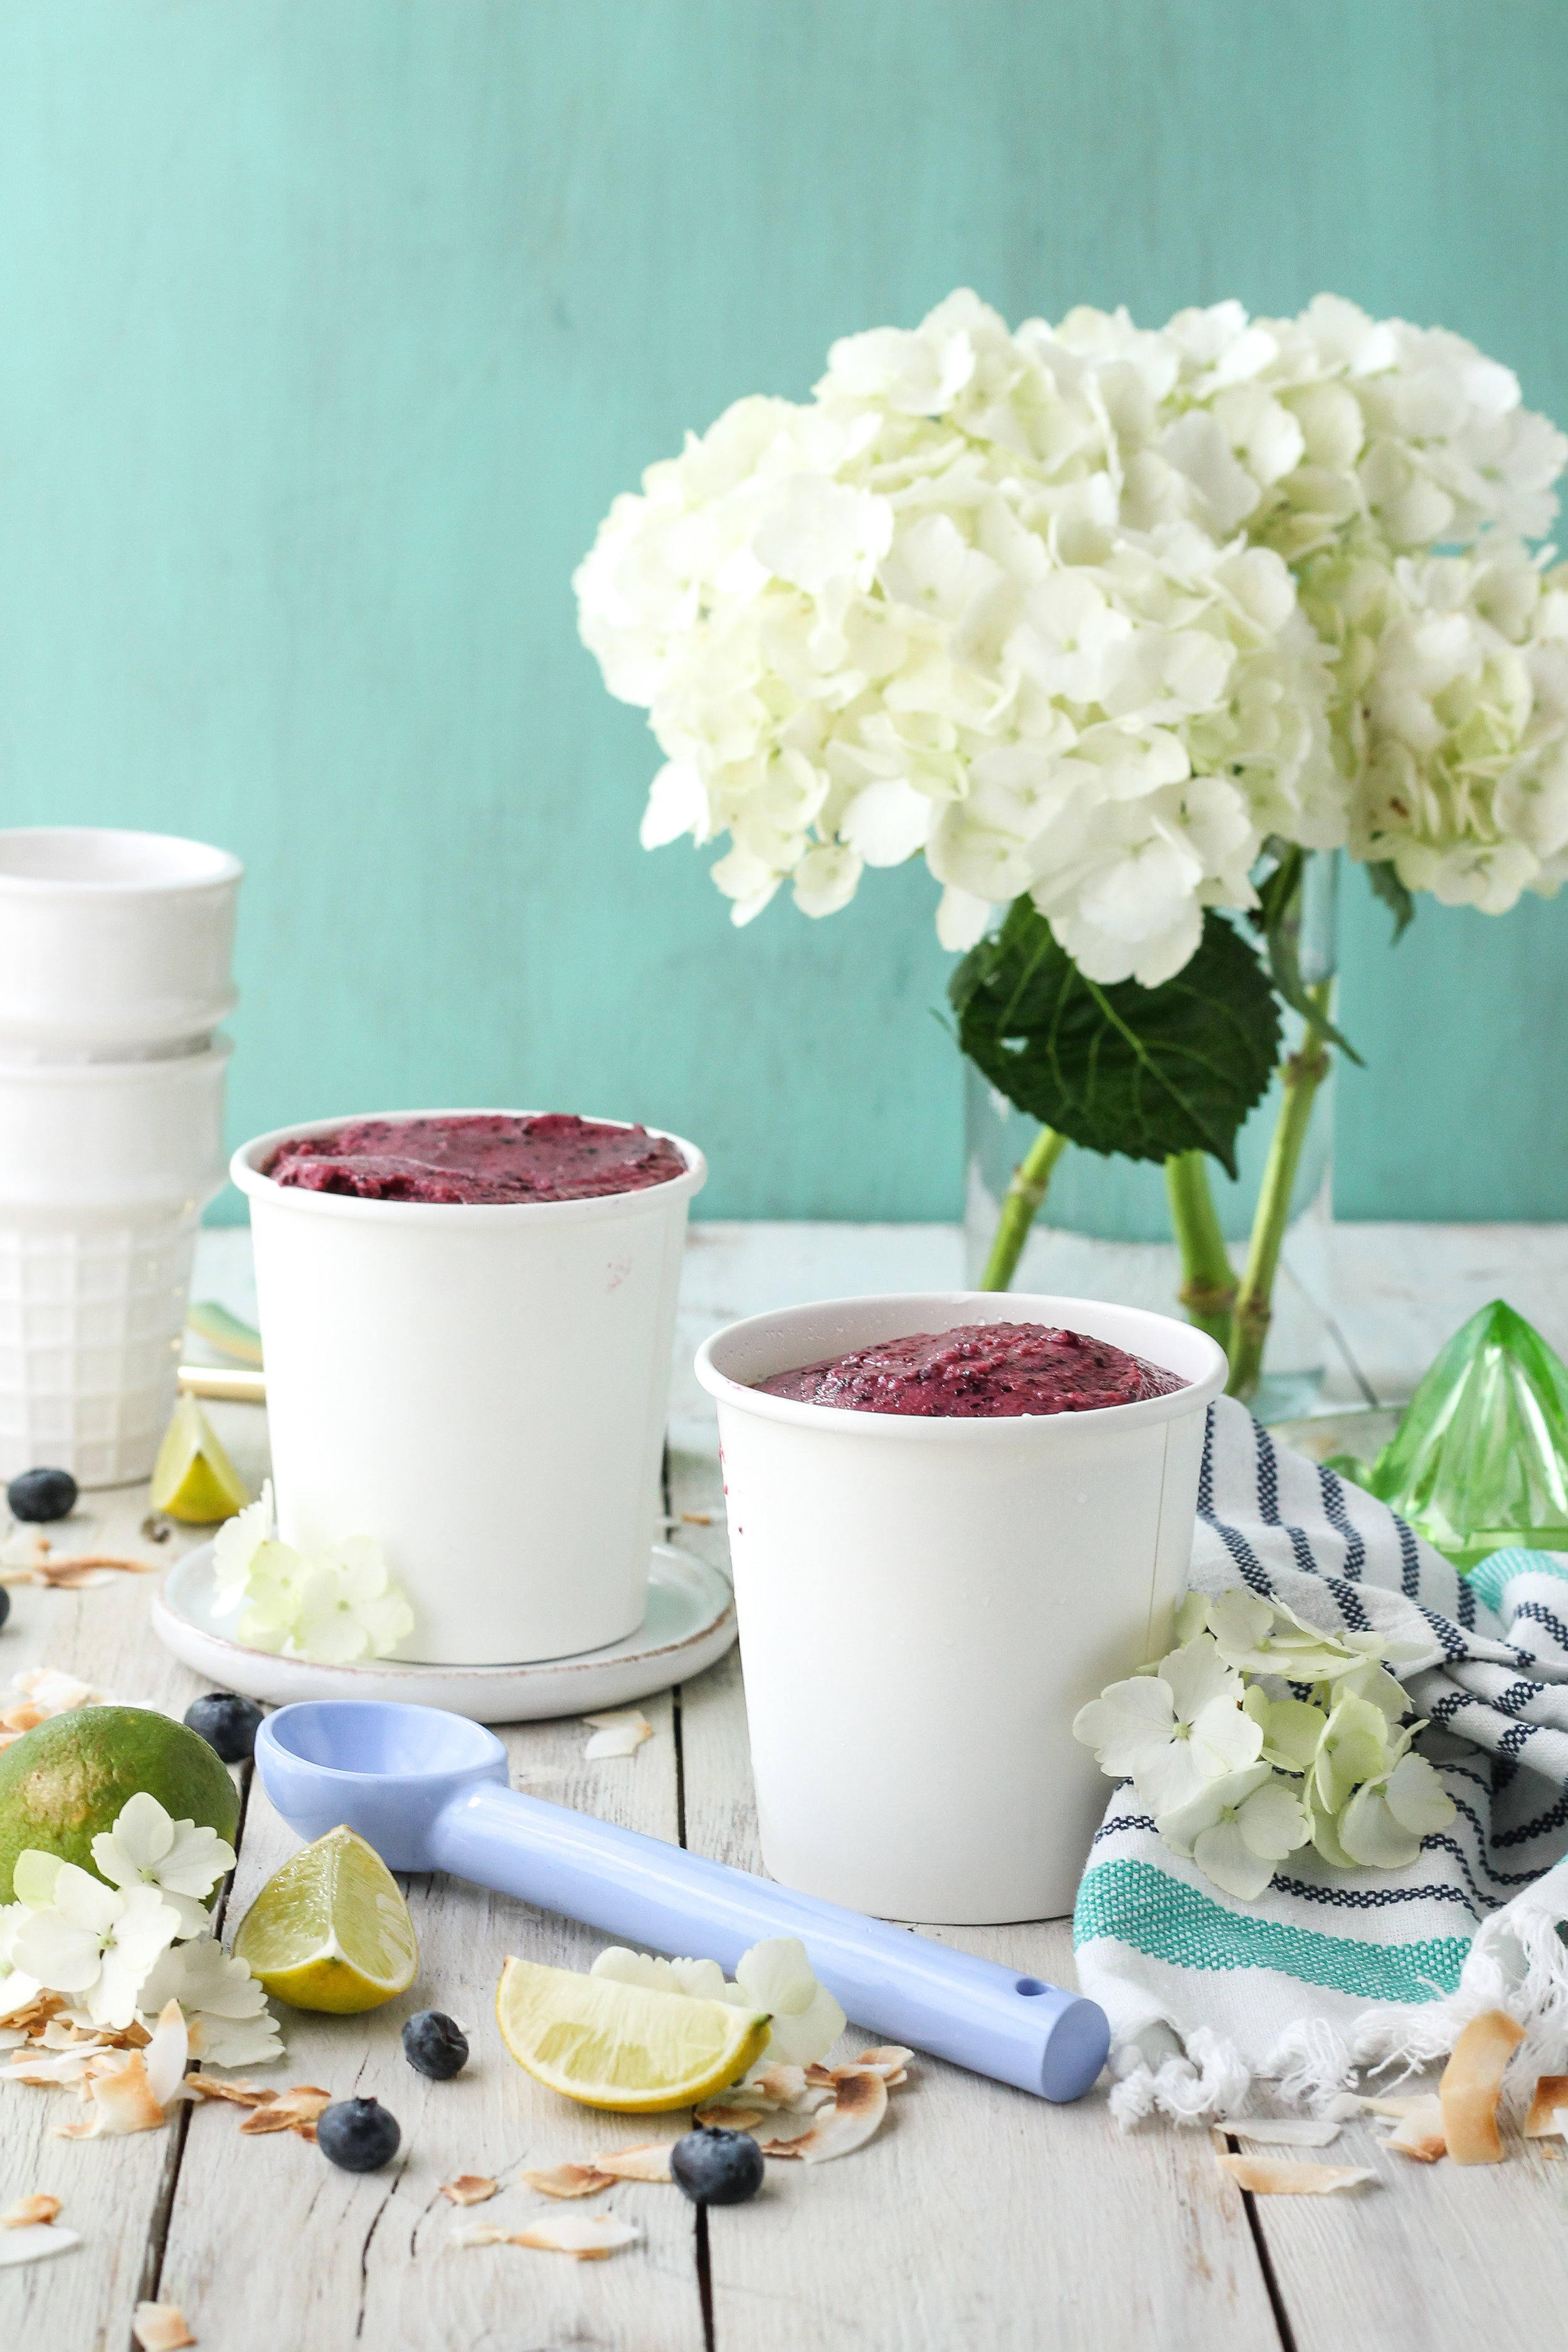 This Blueberry-Lime Coconut Frozen Yogurt is vegan, dairy-free, and full of vitamins and probiotics!  Not to mention it is delicious, refreshing, and incredibly easy to make - all you need is a food-processor!  Find the recipe on WWW.PEDANTICFOODIE.COM!